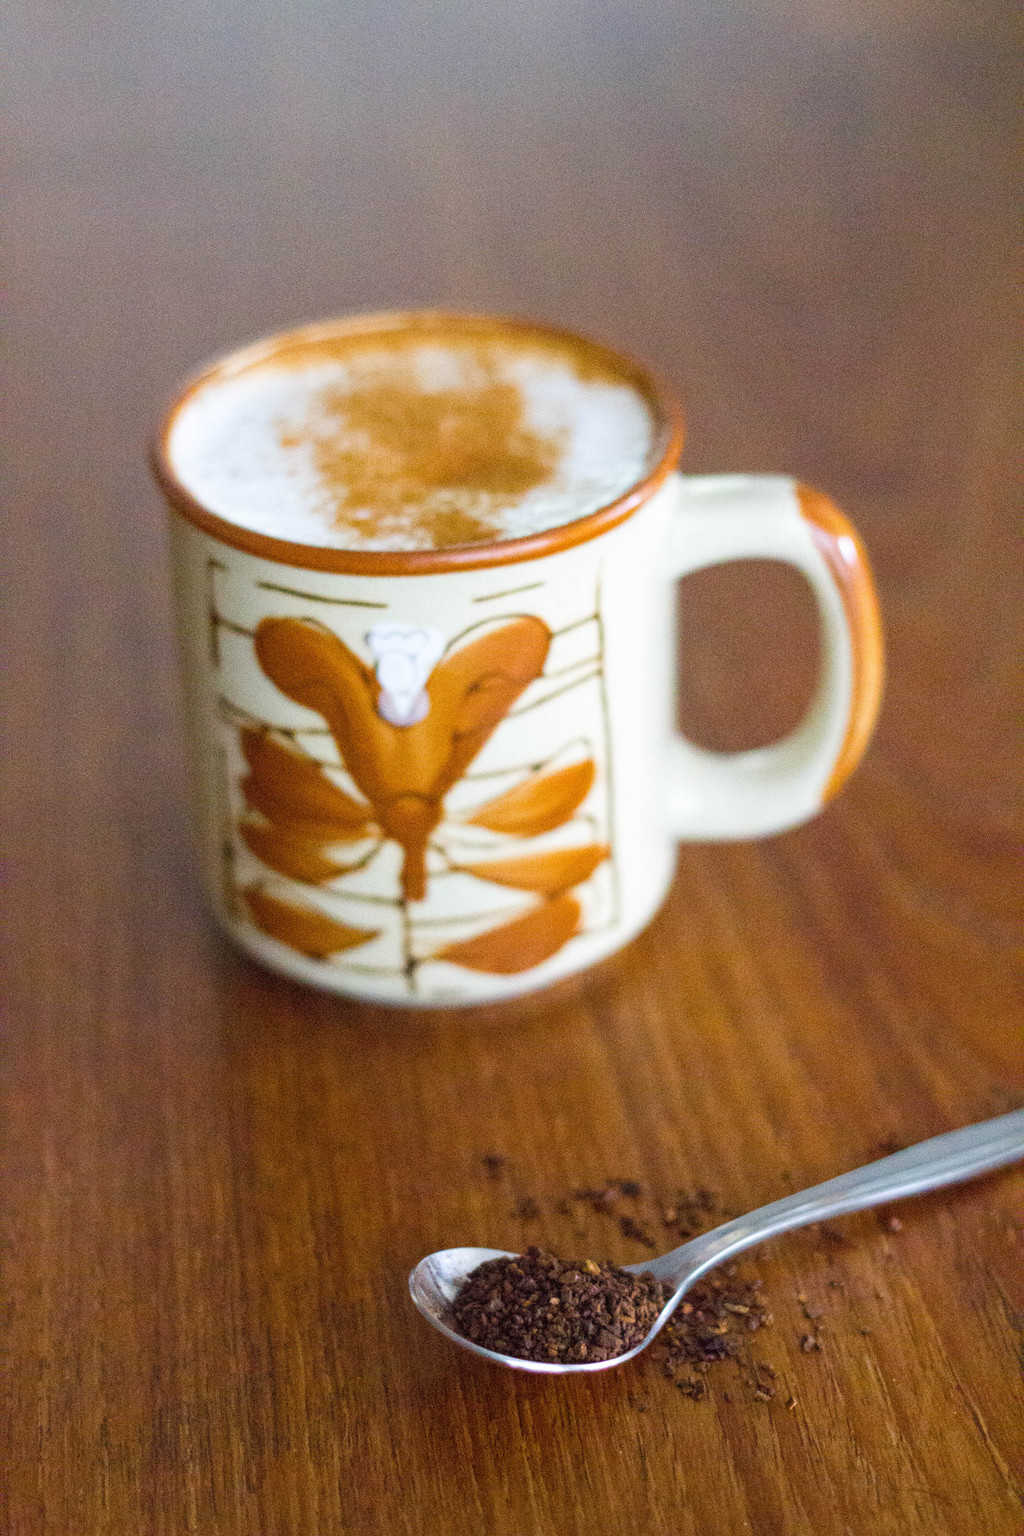 Healthy root coffee substitute with a spoonful of roasted chicory root